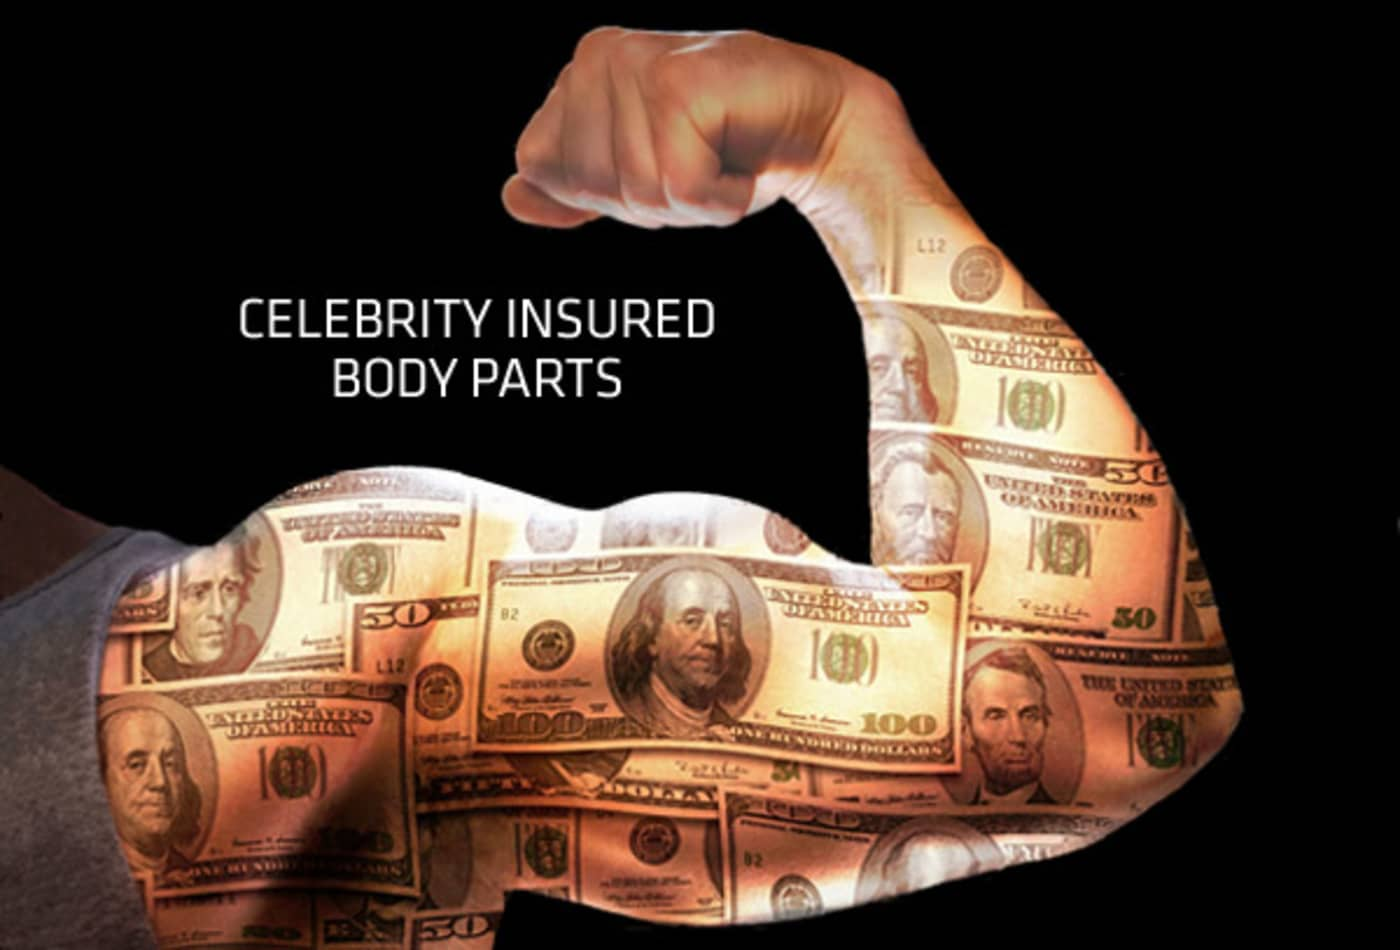 celebrity-insured-body-parts-cover1.jpg